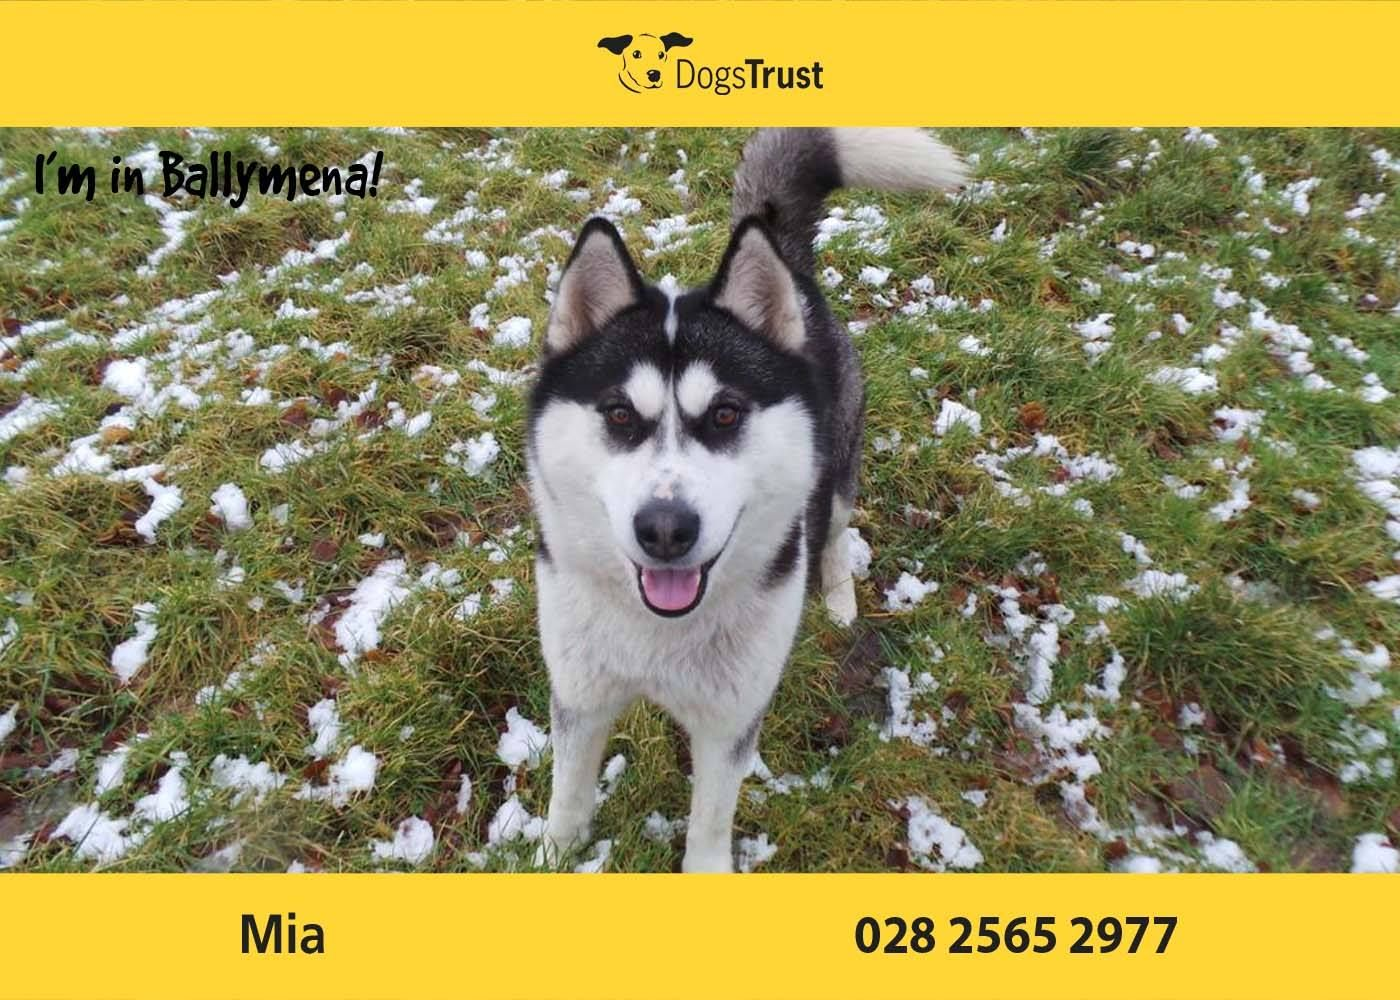 Mia At Dogs Trust Ballymena Is A Real Character Looking For An Active Home Where She Can Enjoy Long Walks She Loves To Play Ball A Dogs Trust Dogs Rescue Dogs